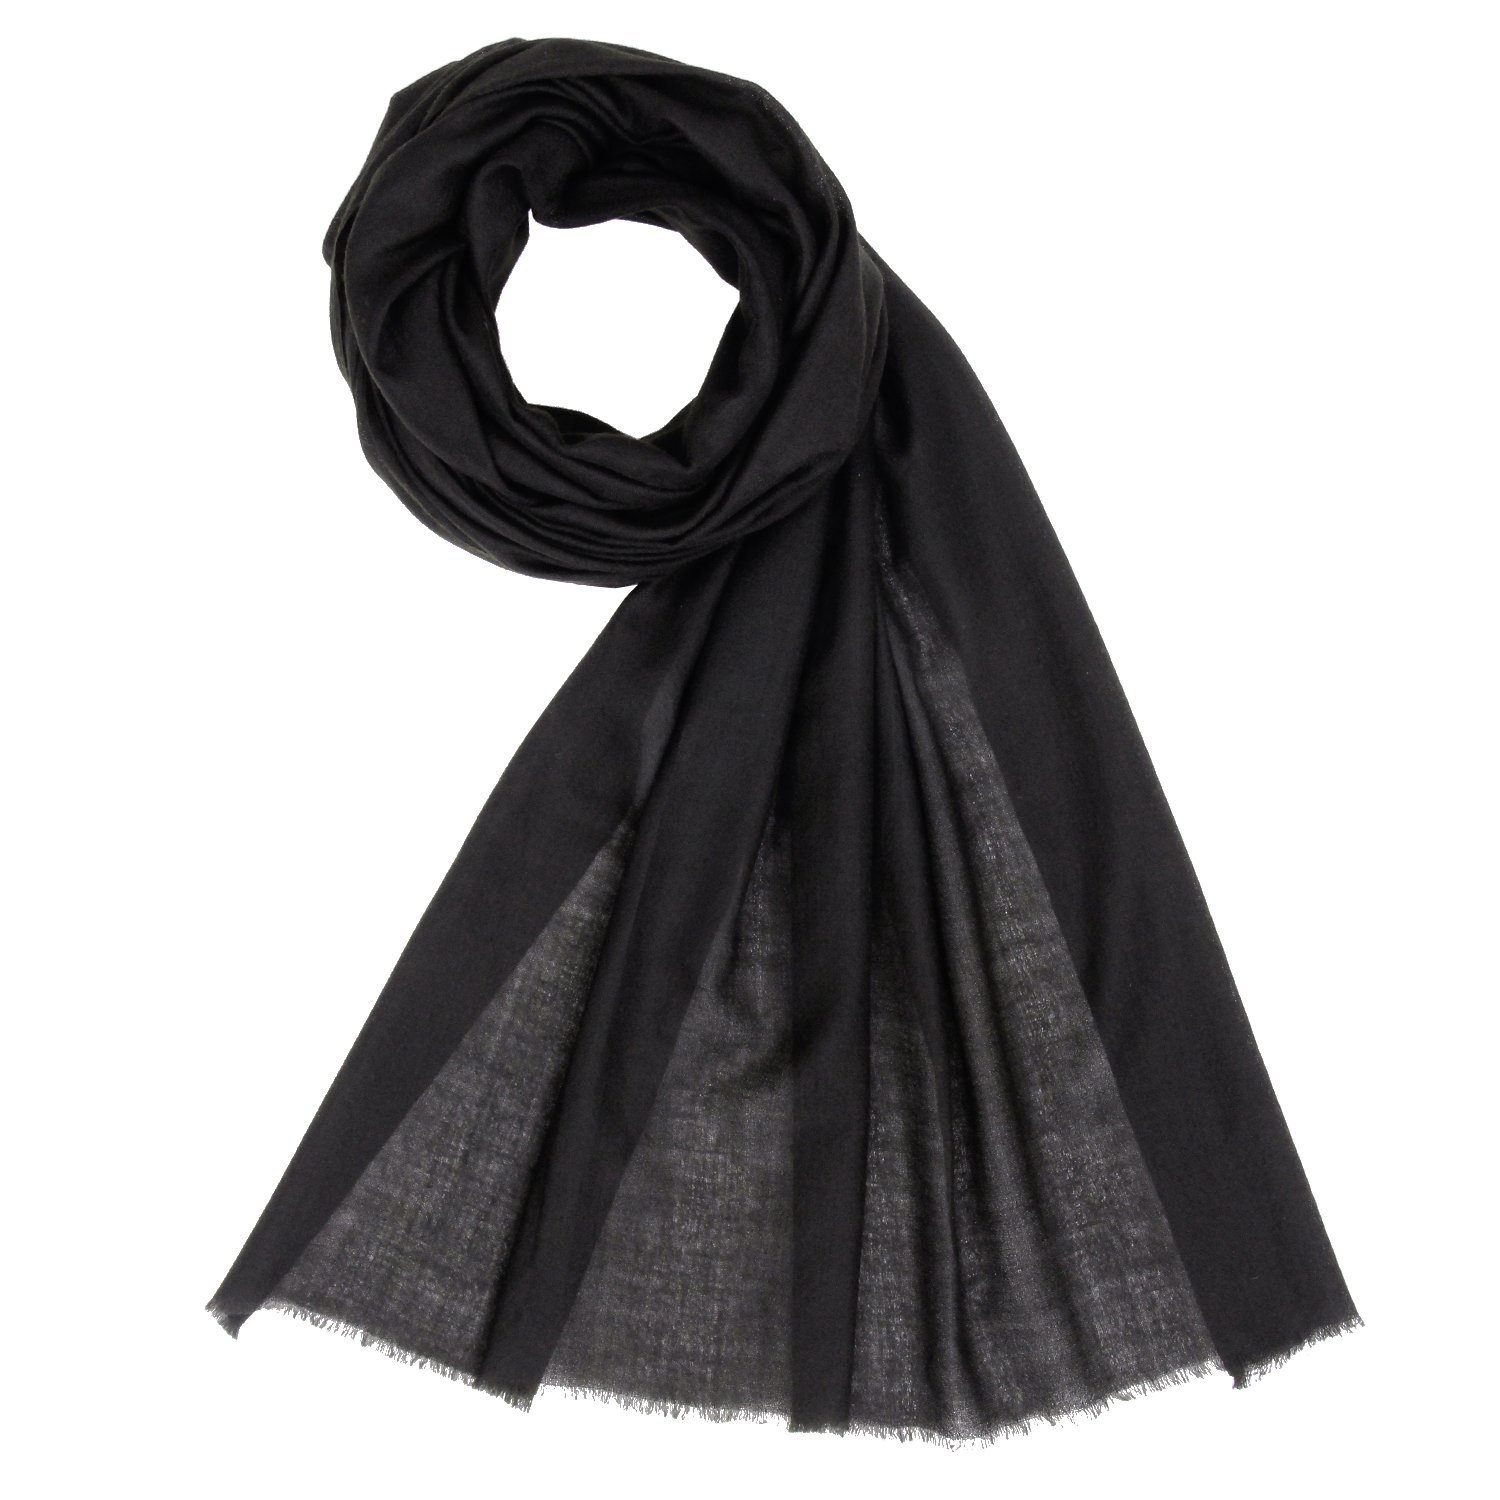 3048dc4b5fcef Get Quotations · Made in Kashmir: 100% Cashmere Scarf Unisex Pashmina Men Women  Shawl by KASHFAB